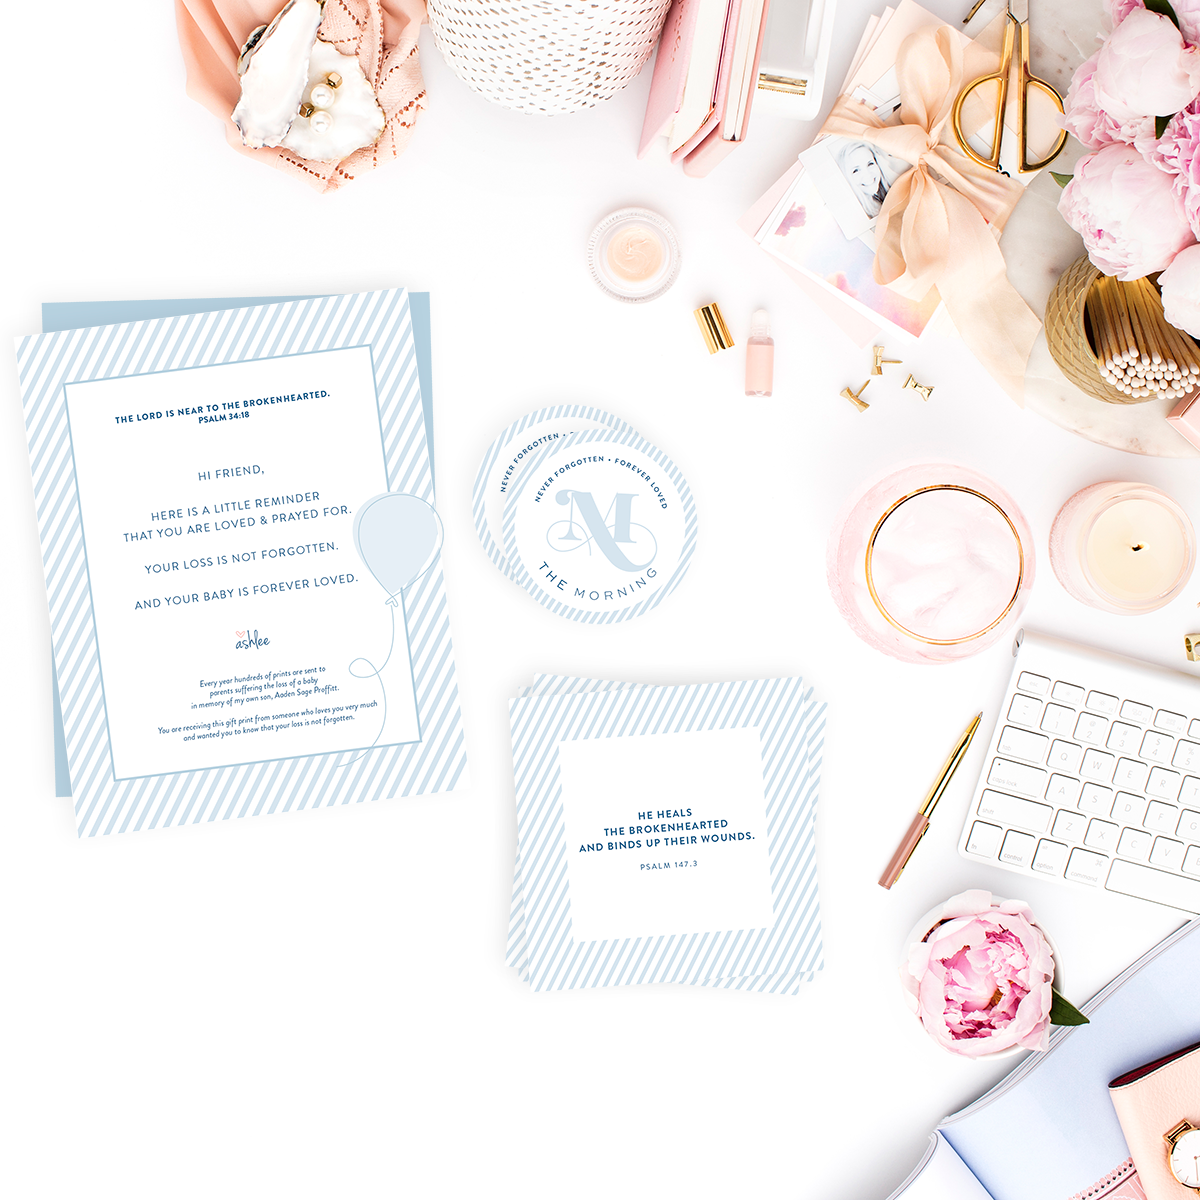 Collateral Designs | The Morning: A Community for Women Grieving the Loss of a Baby | Branding by Laura Kashner | The Morning by Ashlee Proffitt